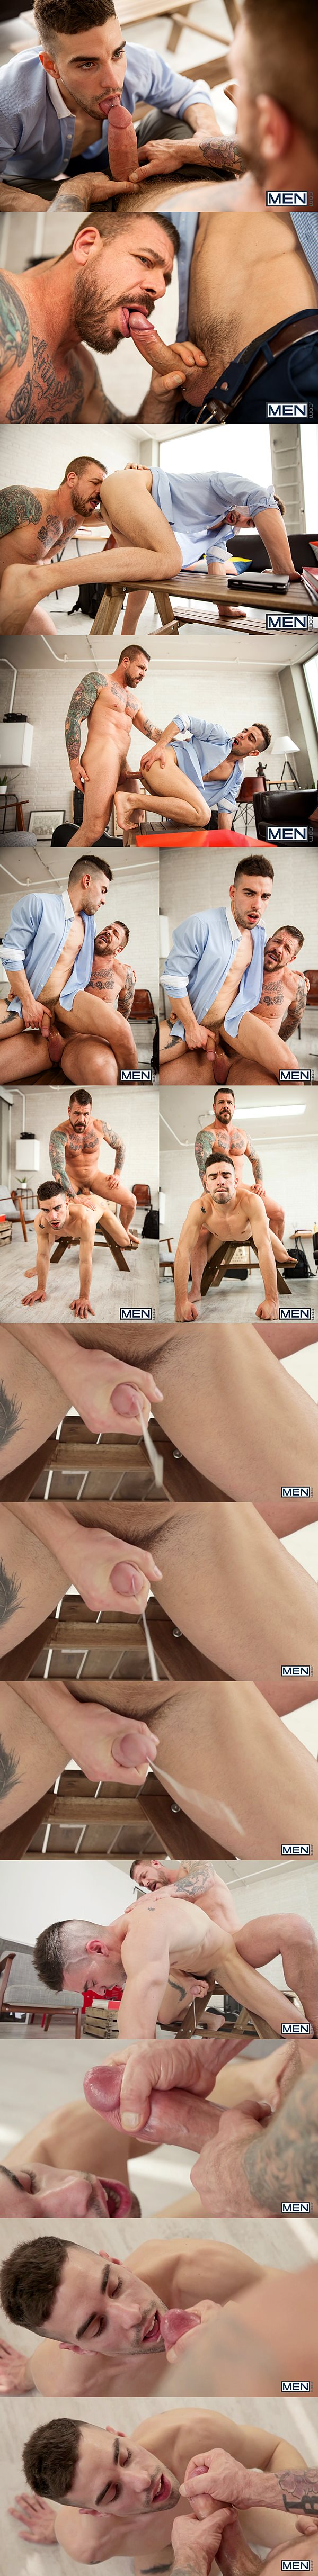 Monster-cocked Rocco Steele fucks Josh Milk's tight ass before he pounds a big load out of Josh in Eat, Prey, Fuck Part 1 at Str8togay 02